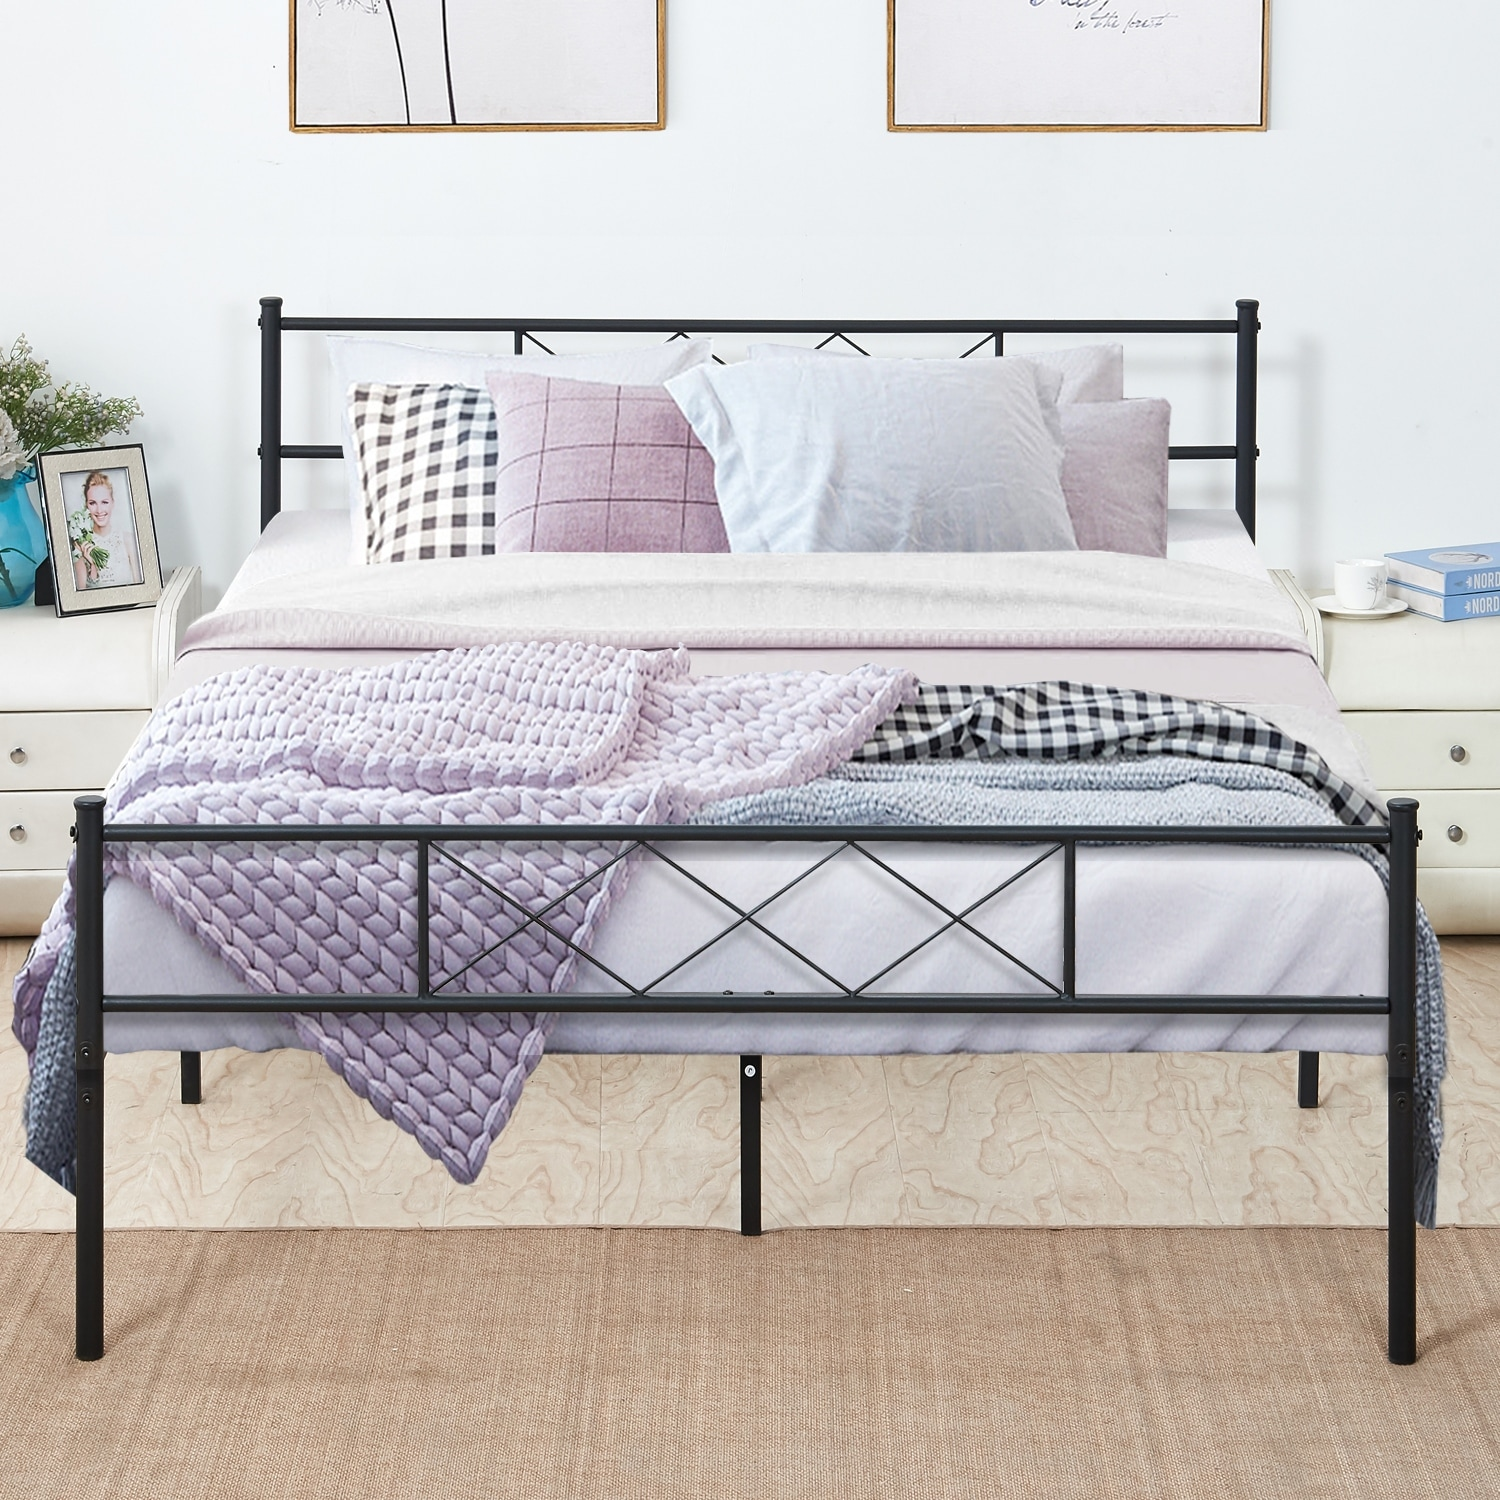 Mattress Platform Vecelo Metal Beds Mattress Foundation Platform Beds With Headboard And Footboard